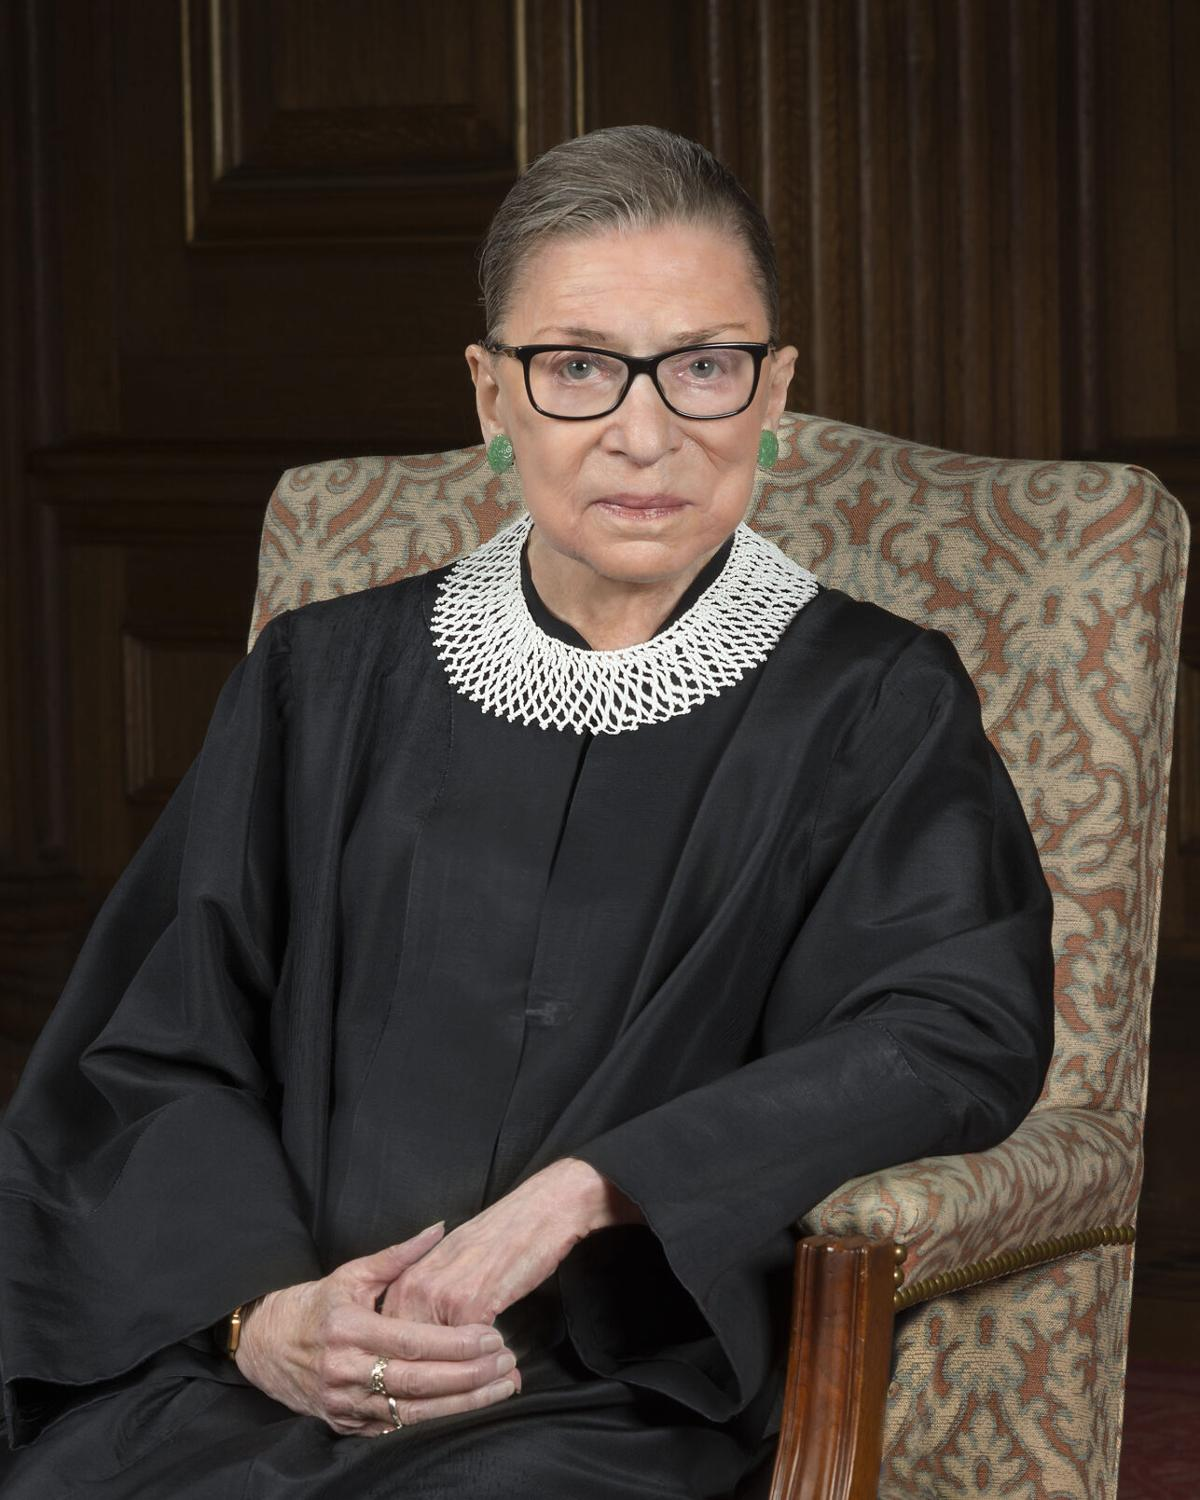 Official Photograph of Justice Ruth Bader Ginsburg